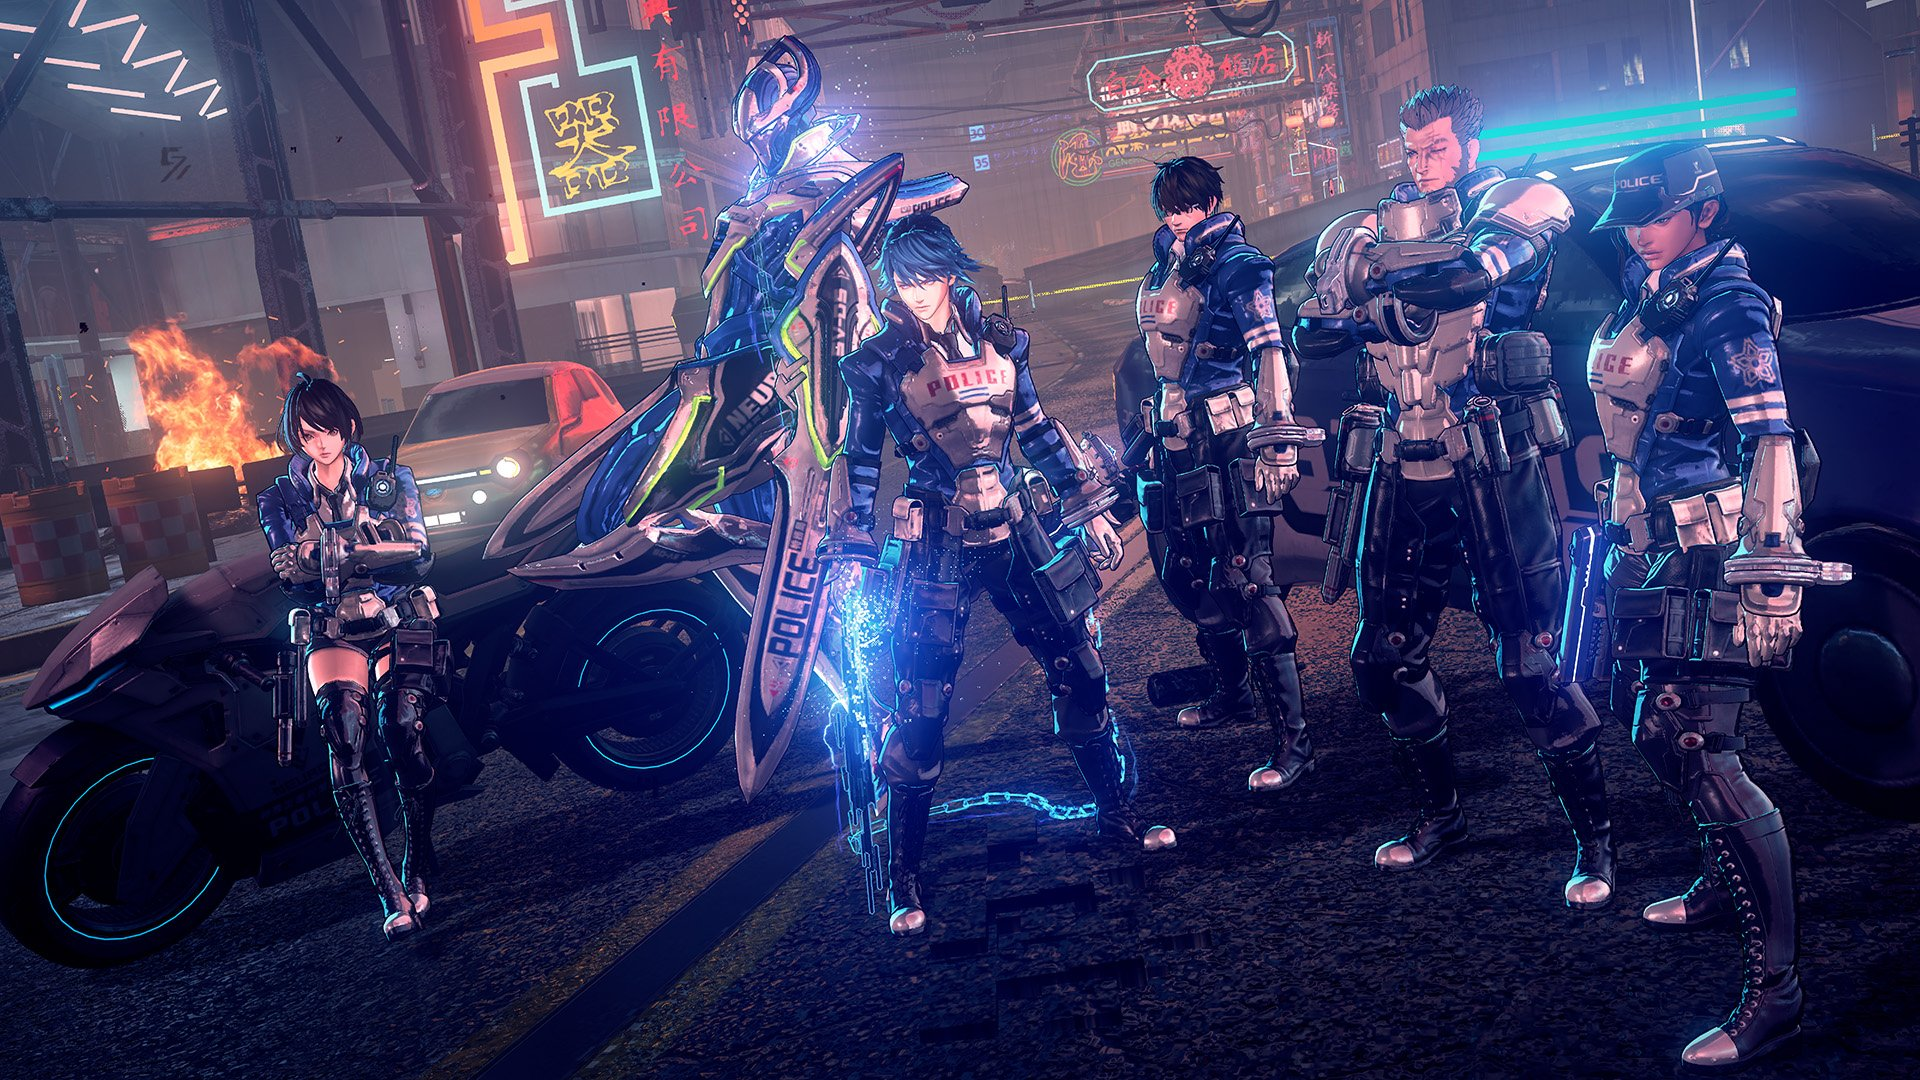 Astral Chain has a confirmed release date of August 30, 2019 for Nintendo Switch.